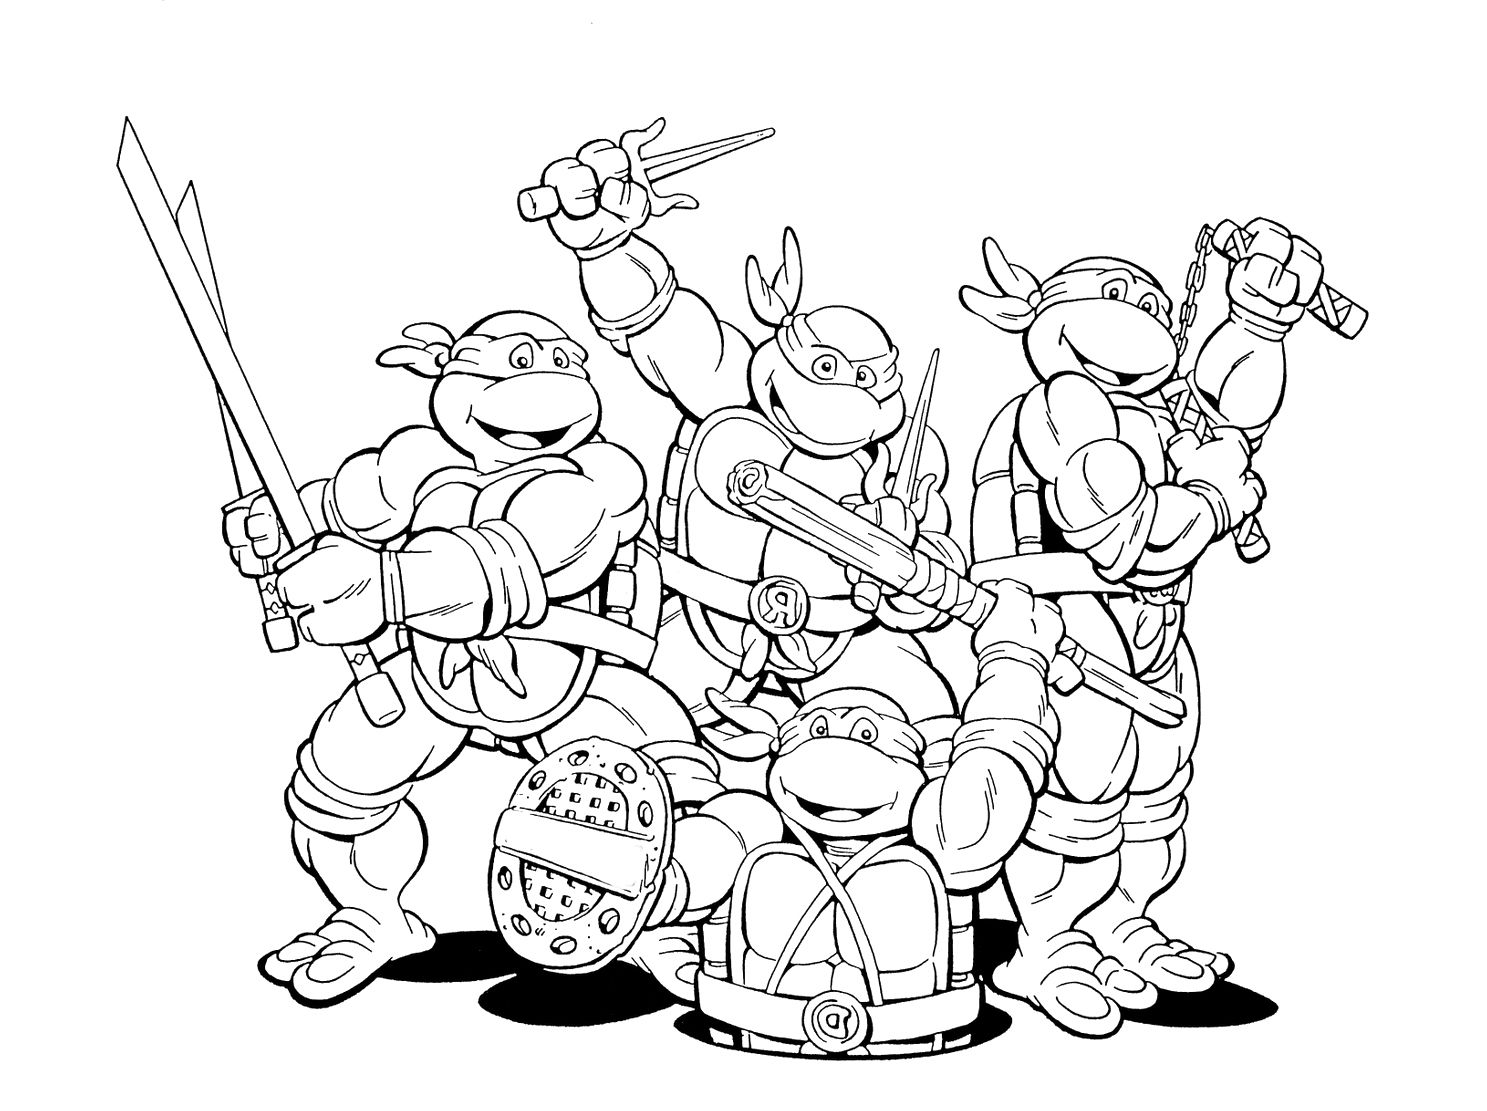 Mandala coloring pages turtles - Funny Ninja Turtles Coloring Pages